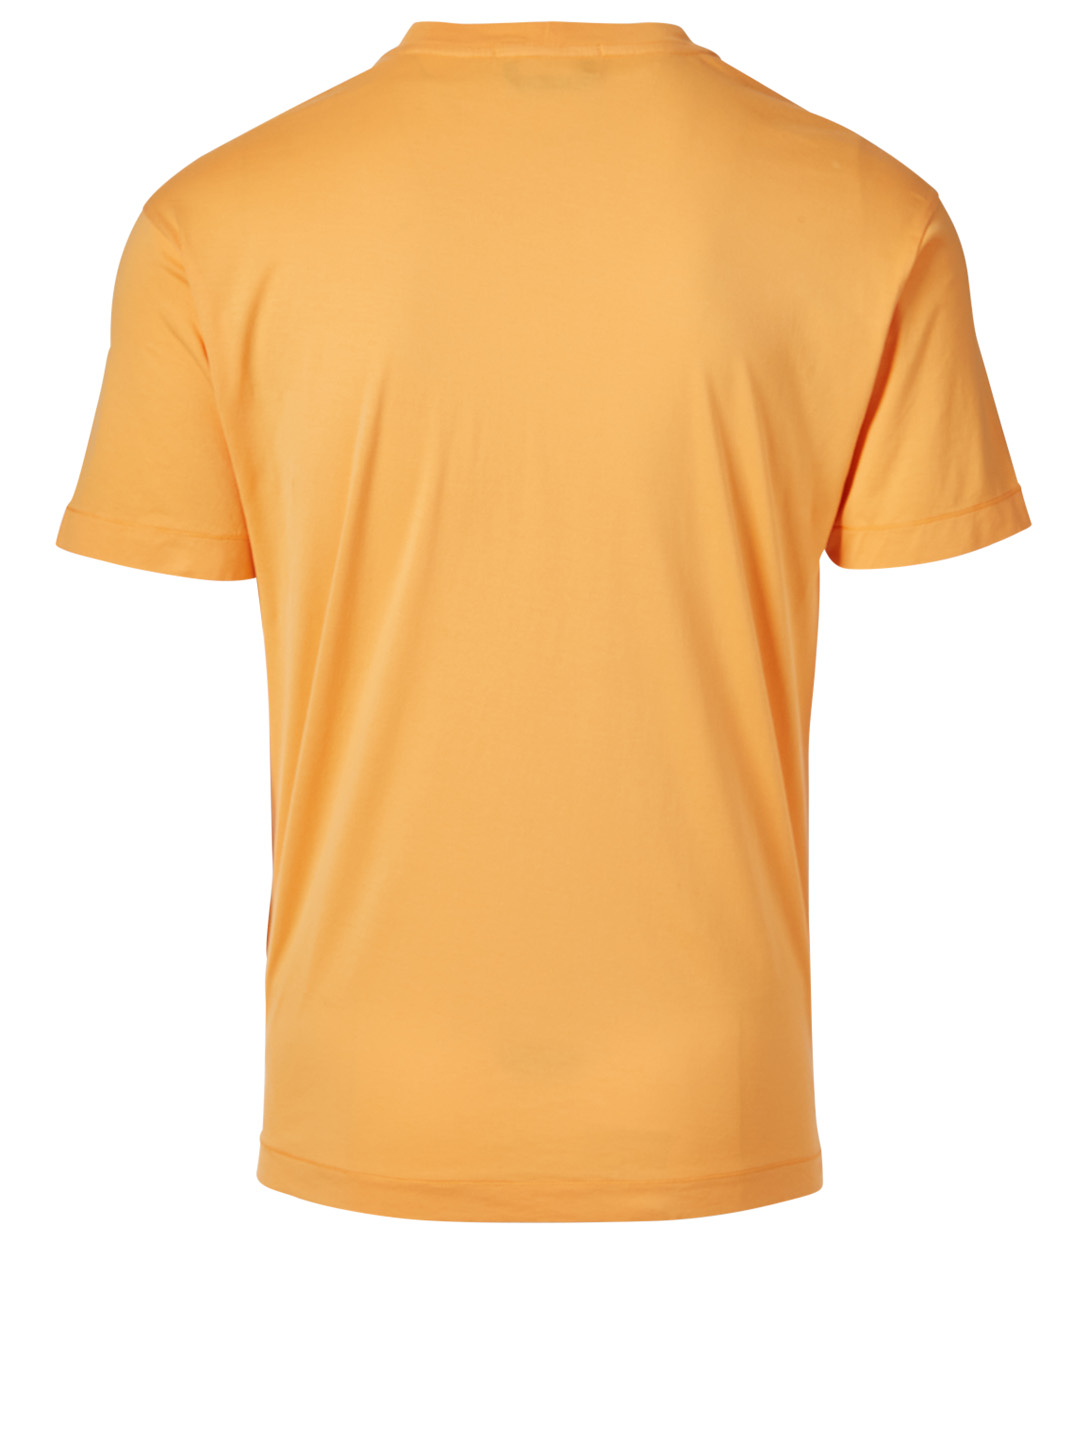 STONE ISLAND Cotton Short-Sleeve T-Shirt Men's Orange